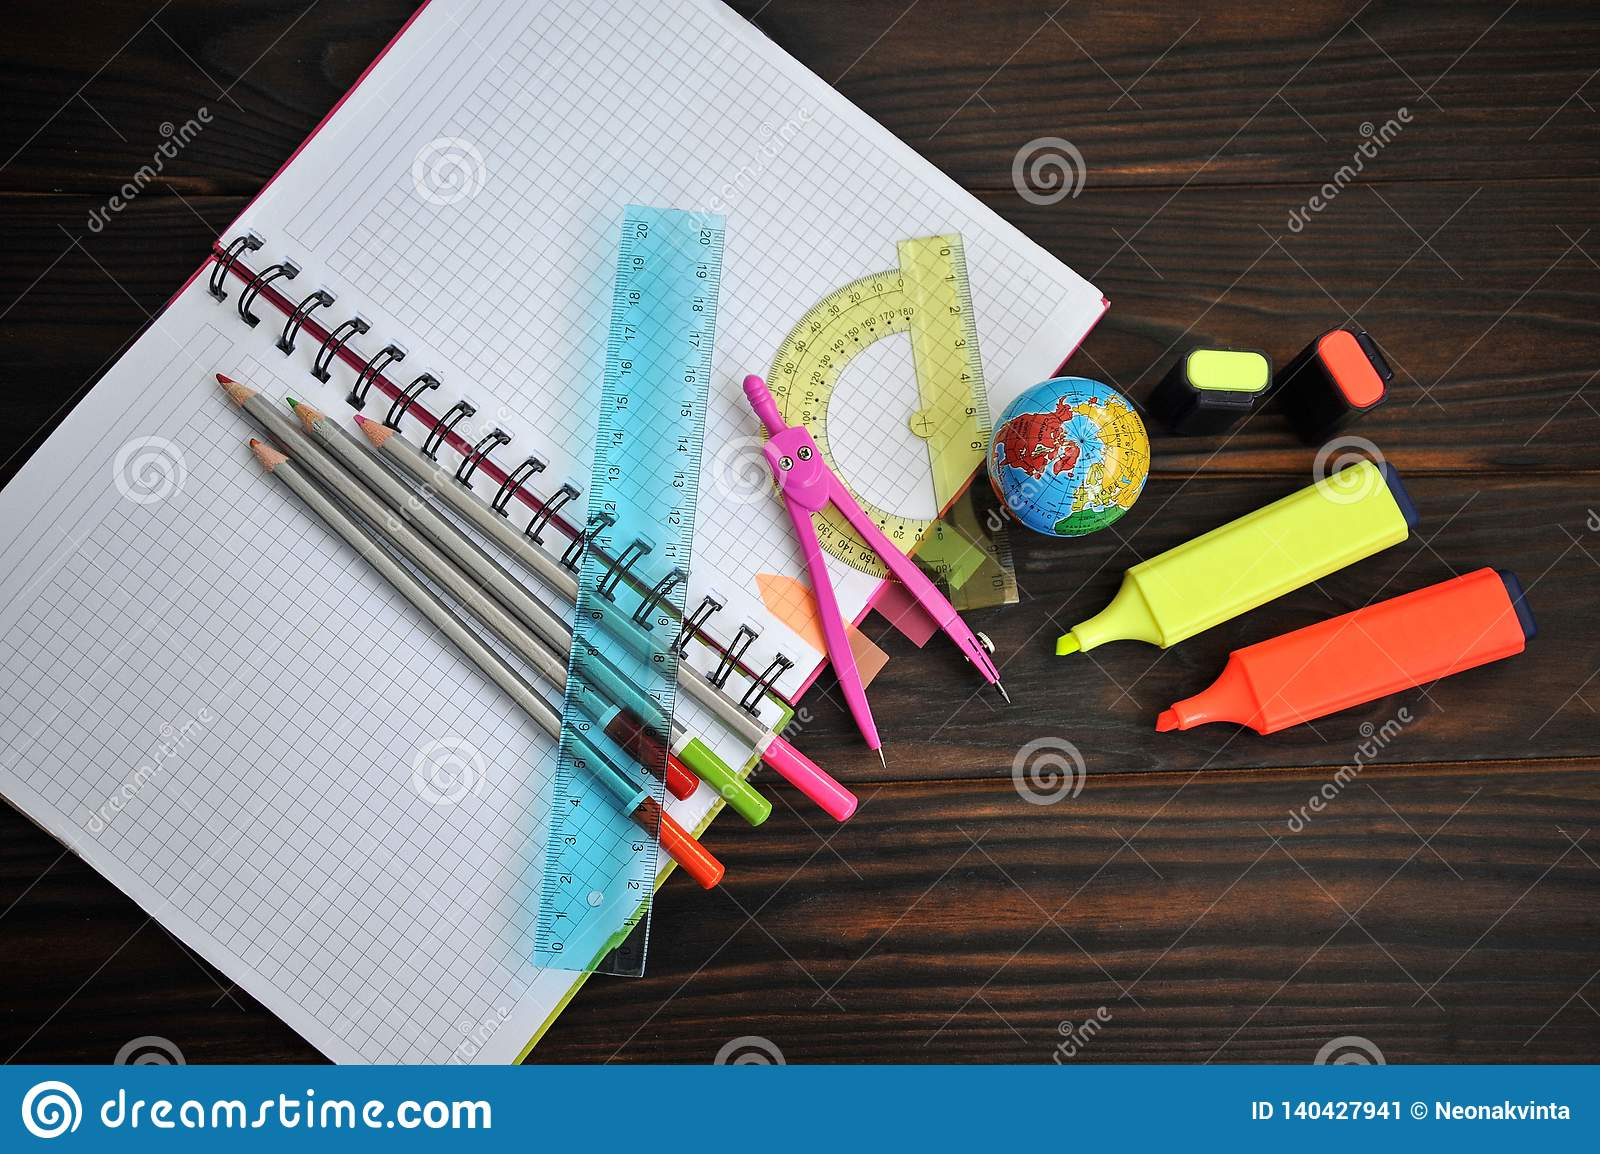 Stationery scattered on a notebook lying on a dark wooden table,